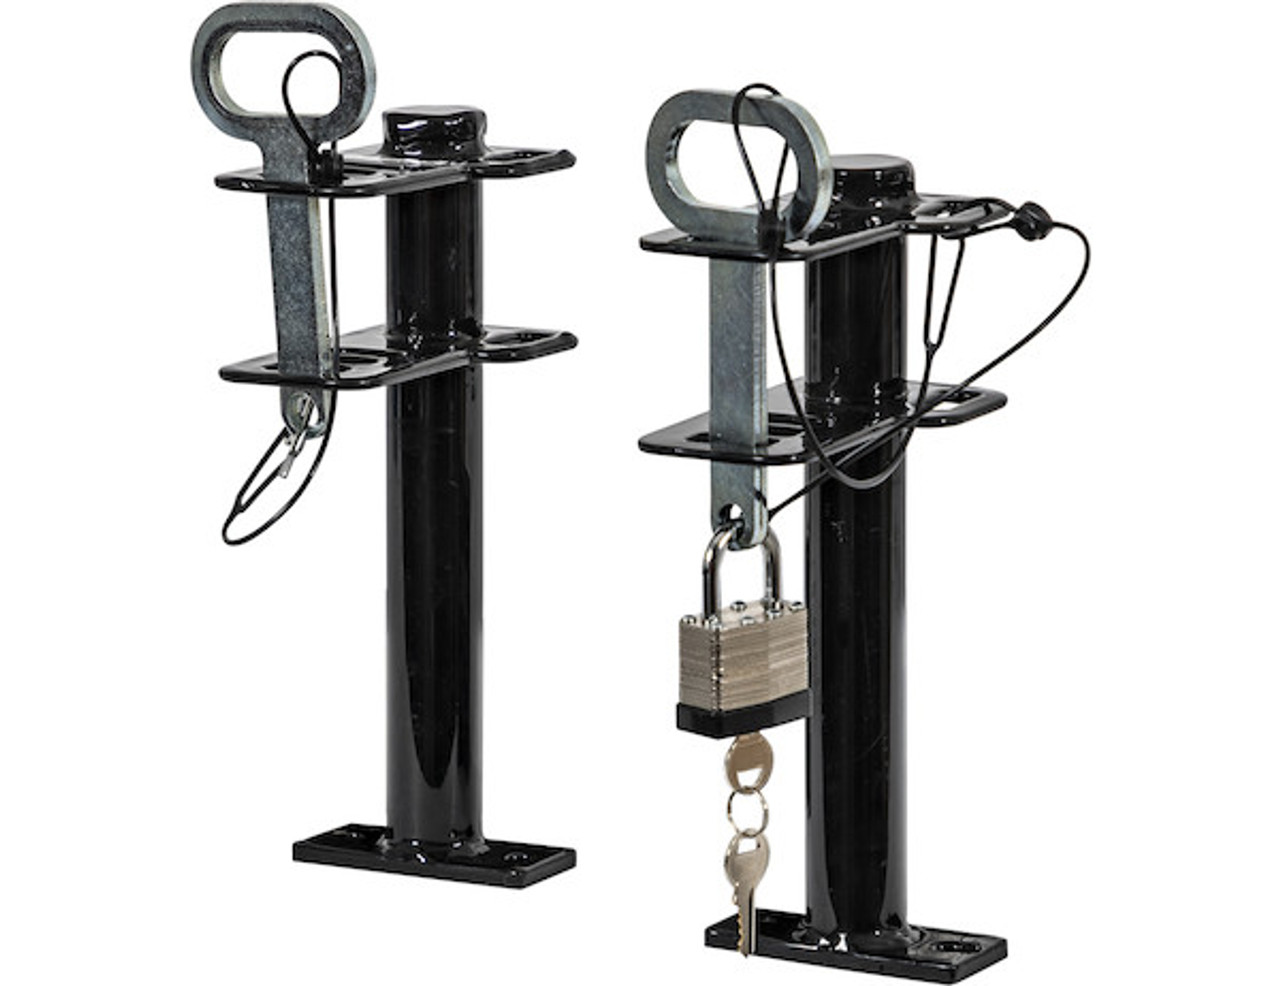 Buyers LT16 Lockable Trimmer Rack Carrier Holder for 1 Trimmer for Trailers and Trucks Picture # 3